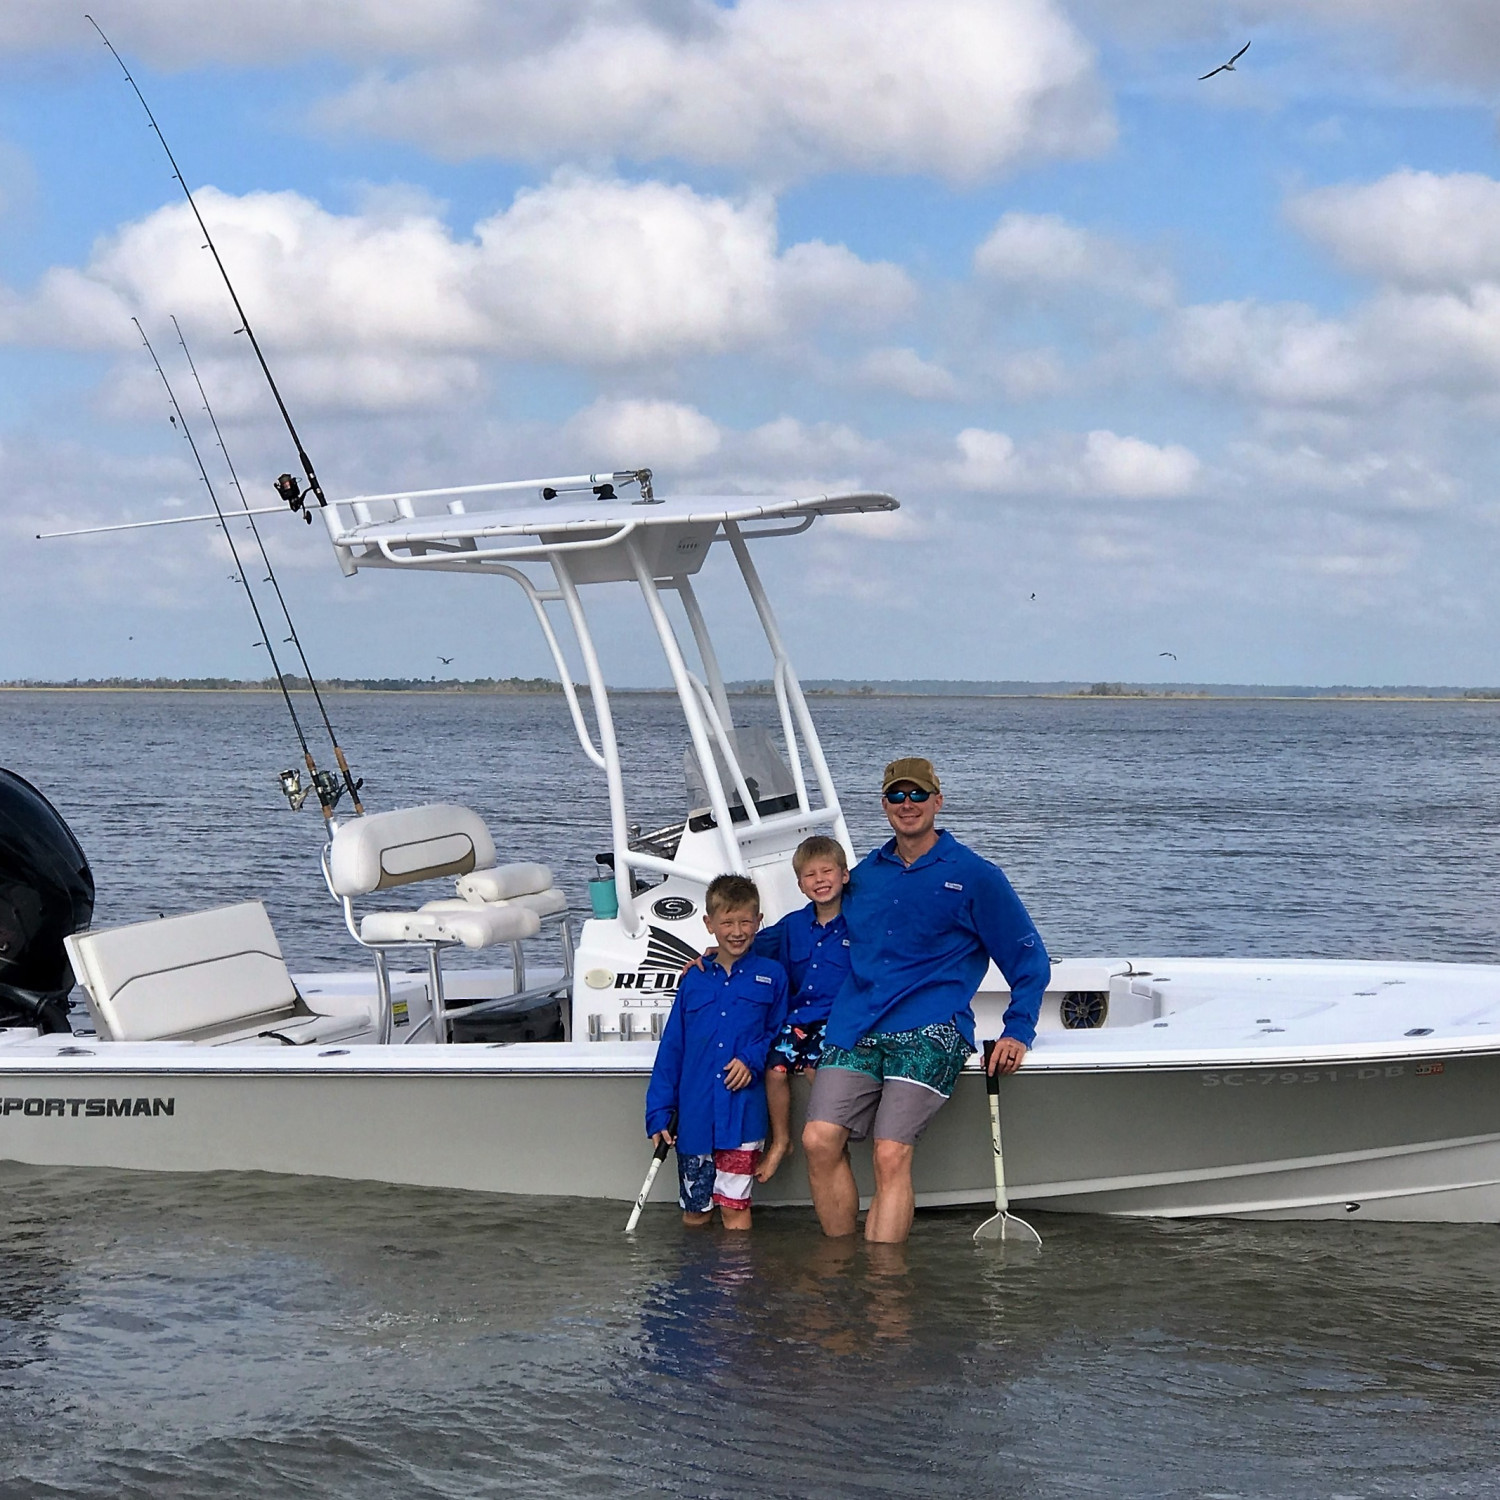 Title: The family's first trip in our new Sportsman - On board their Sportsman Tournament 214 Bay Boat - Location: Wassaw National Wildlife Refuge, Ogeechee River, Savannah, GA. Participating in the Photo Contest #SportsmanNovember2017